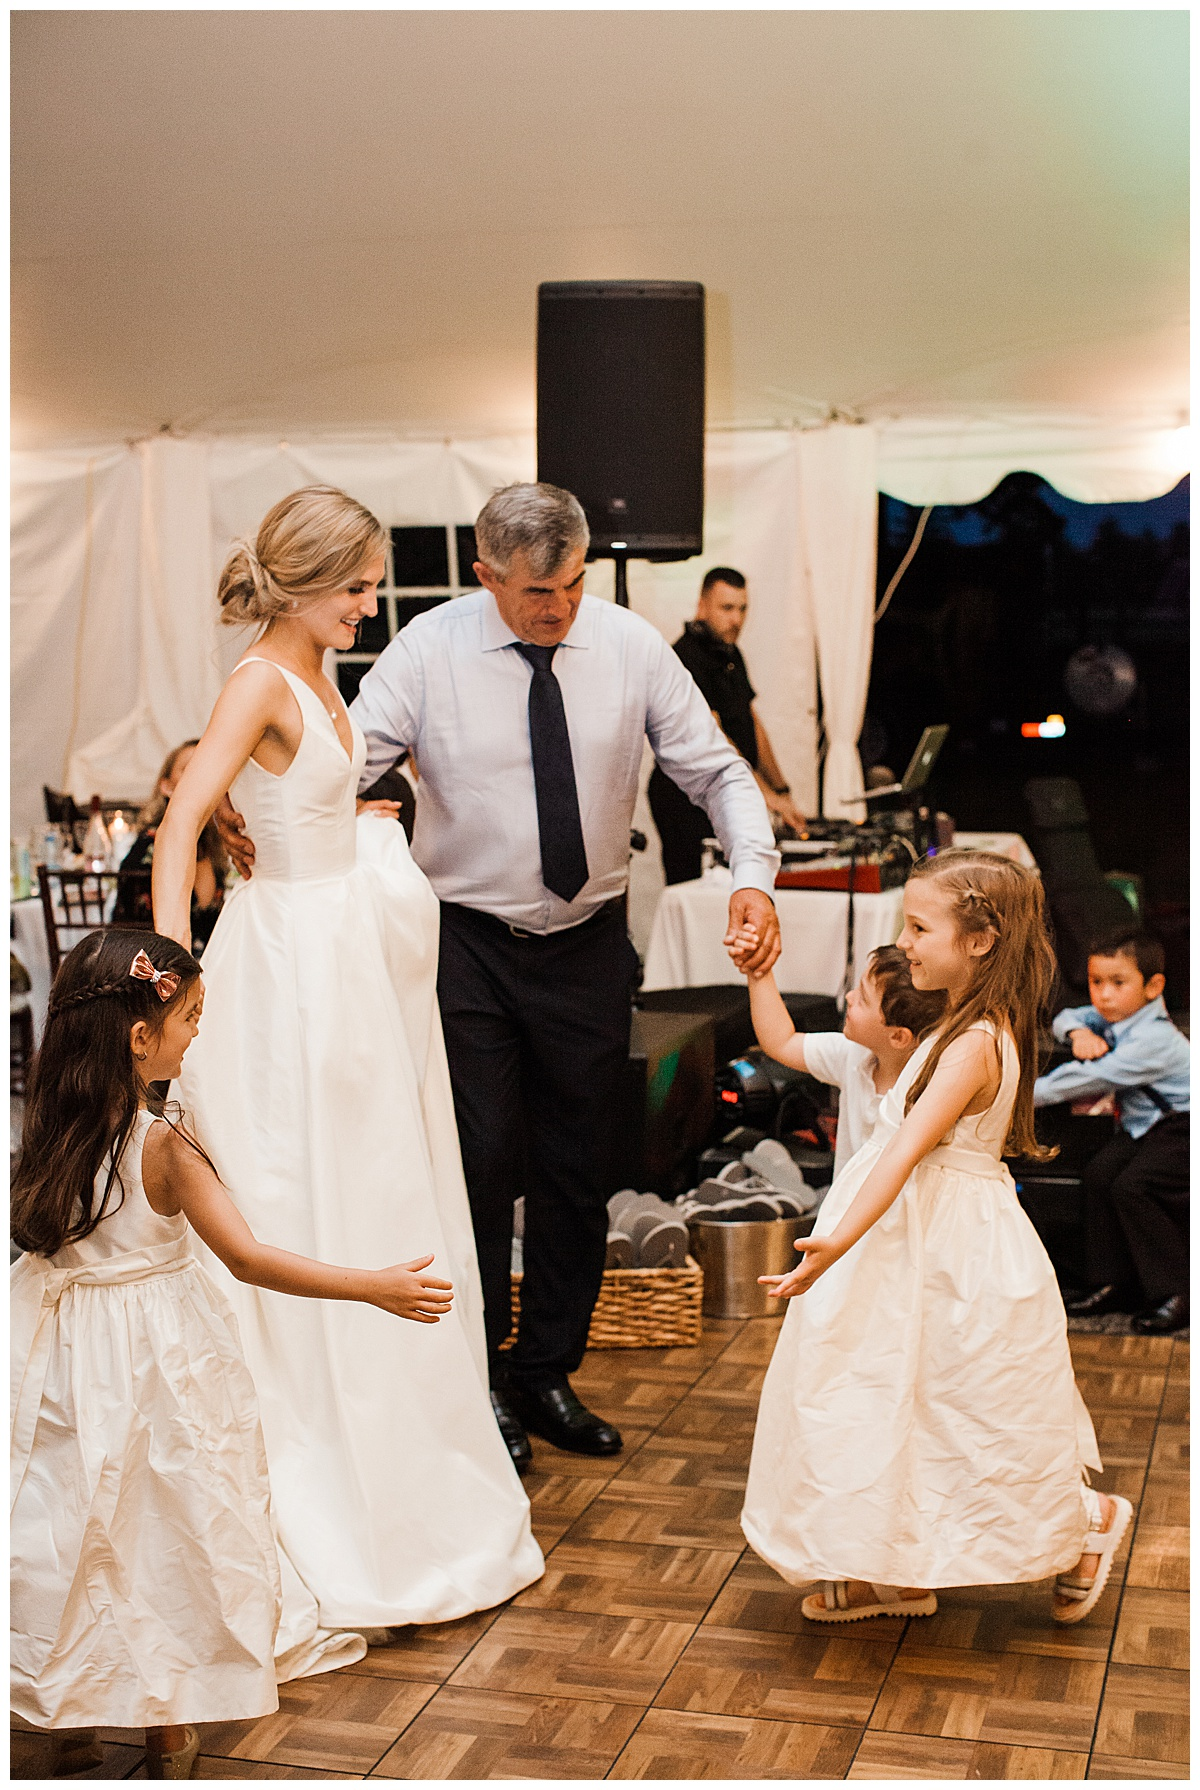 Bride and her father dance with little ones  3photography